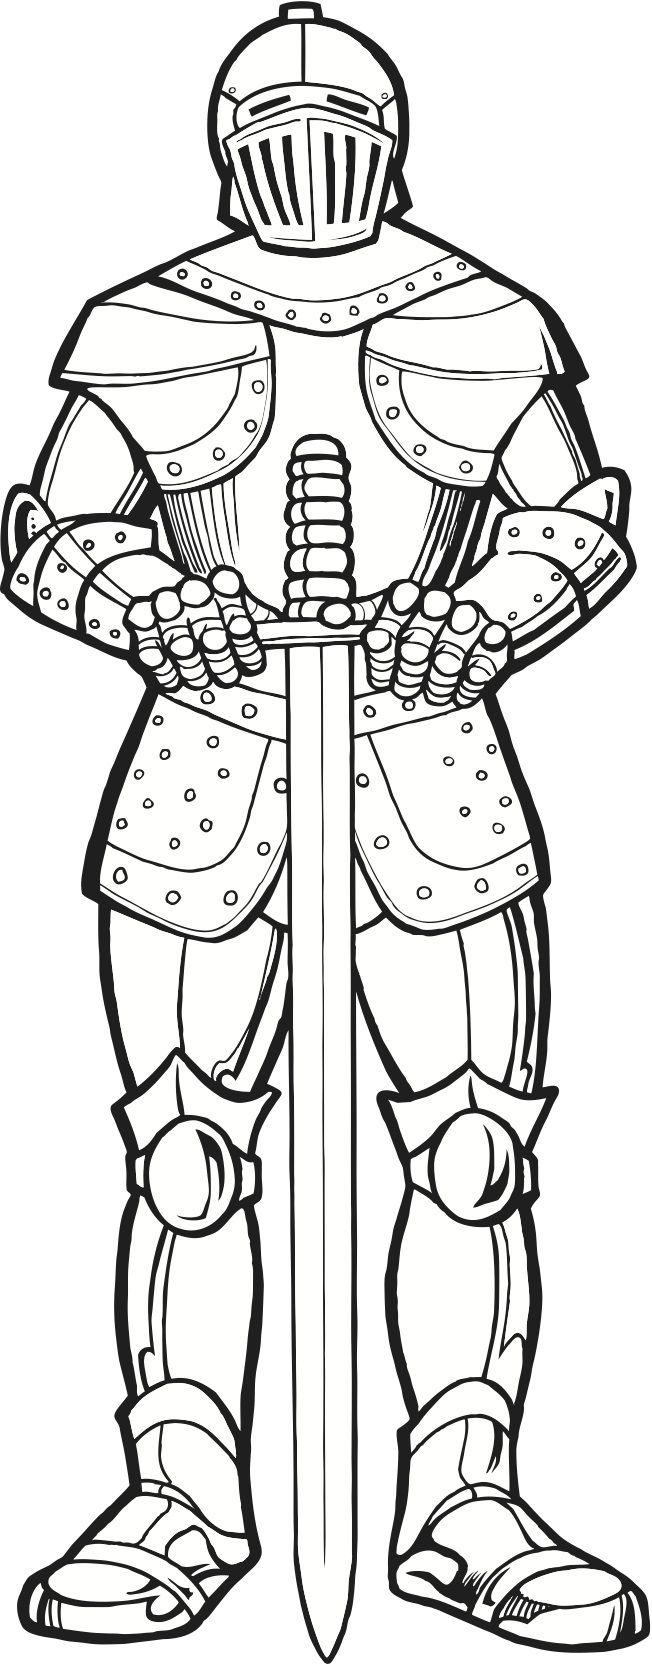 Make Suit Of Armor Out Cardboard Knight In Coloring Page